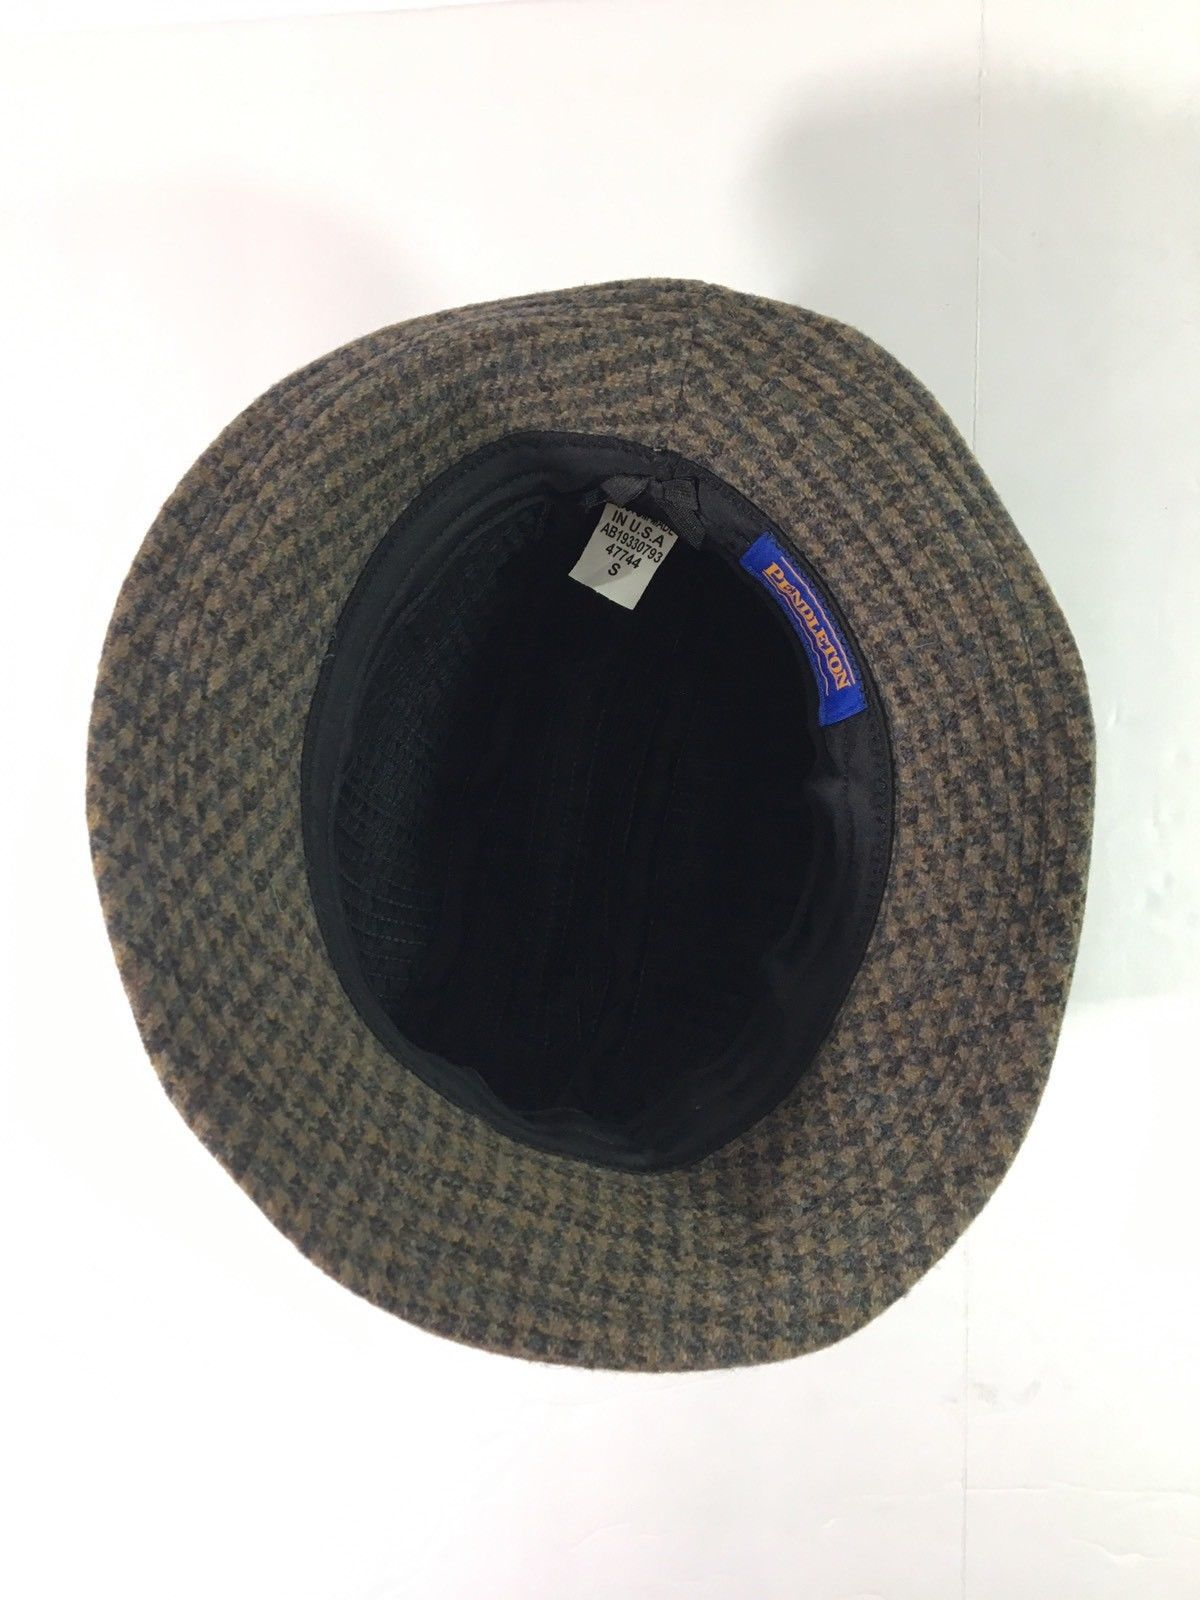 Pendleton Wool Tweed Plaid Fedora Bucket Hat Custom Made in USA Size Small f7b728184171